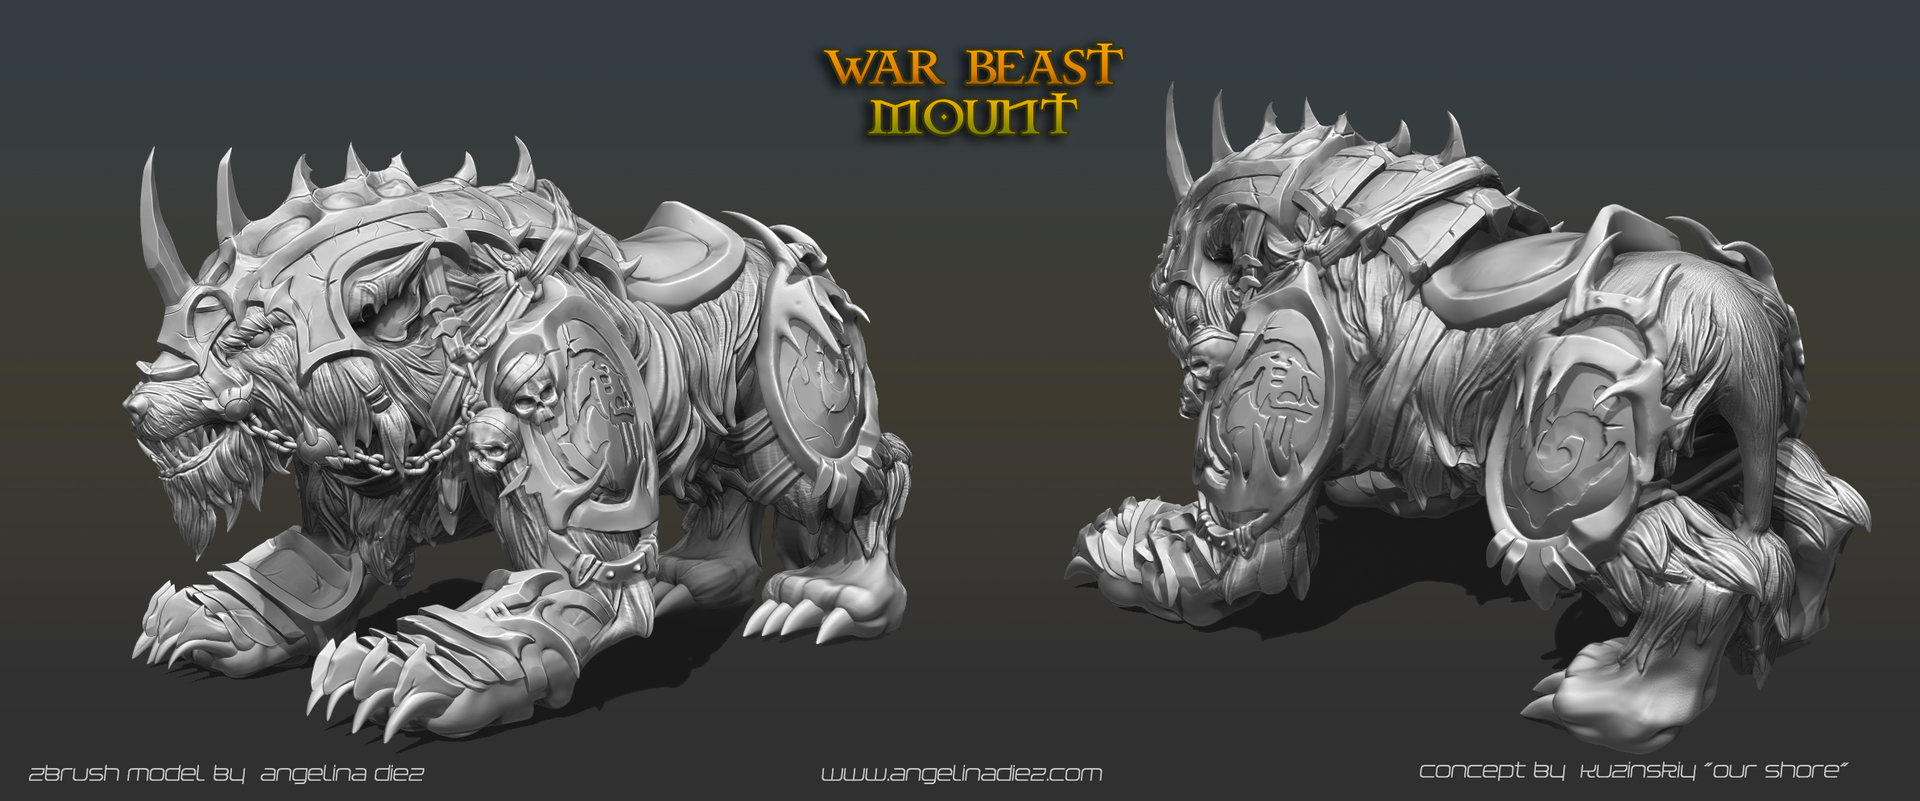 Angelina diez beastmount by shadyra